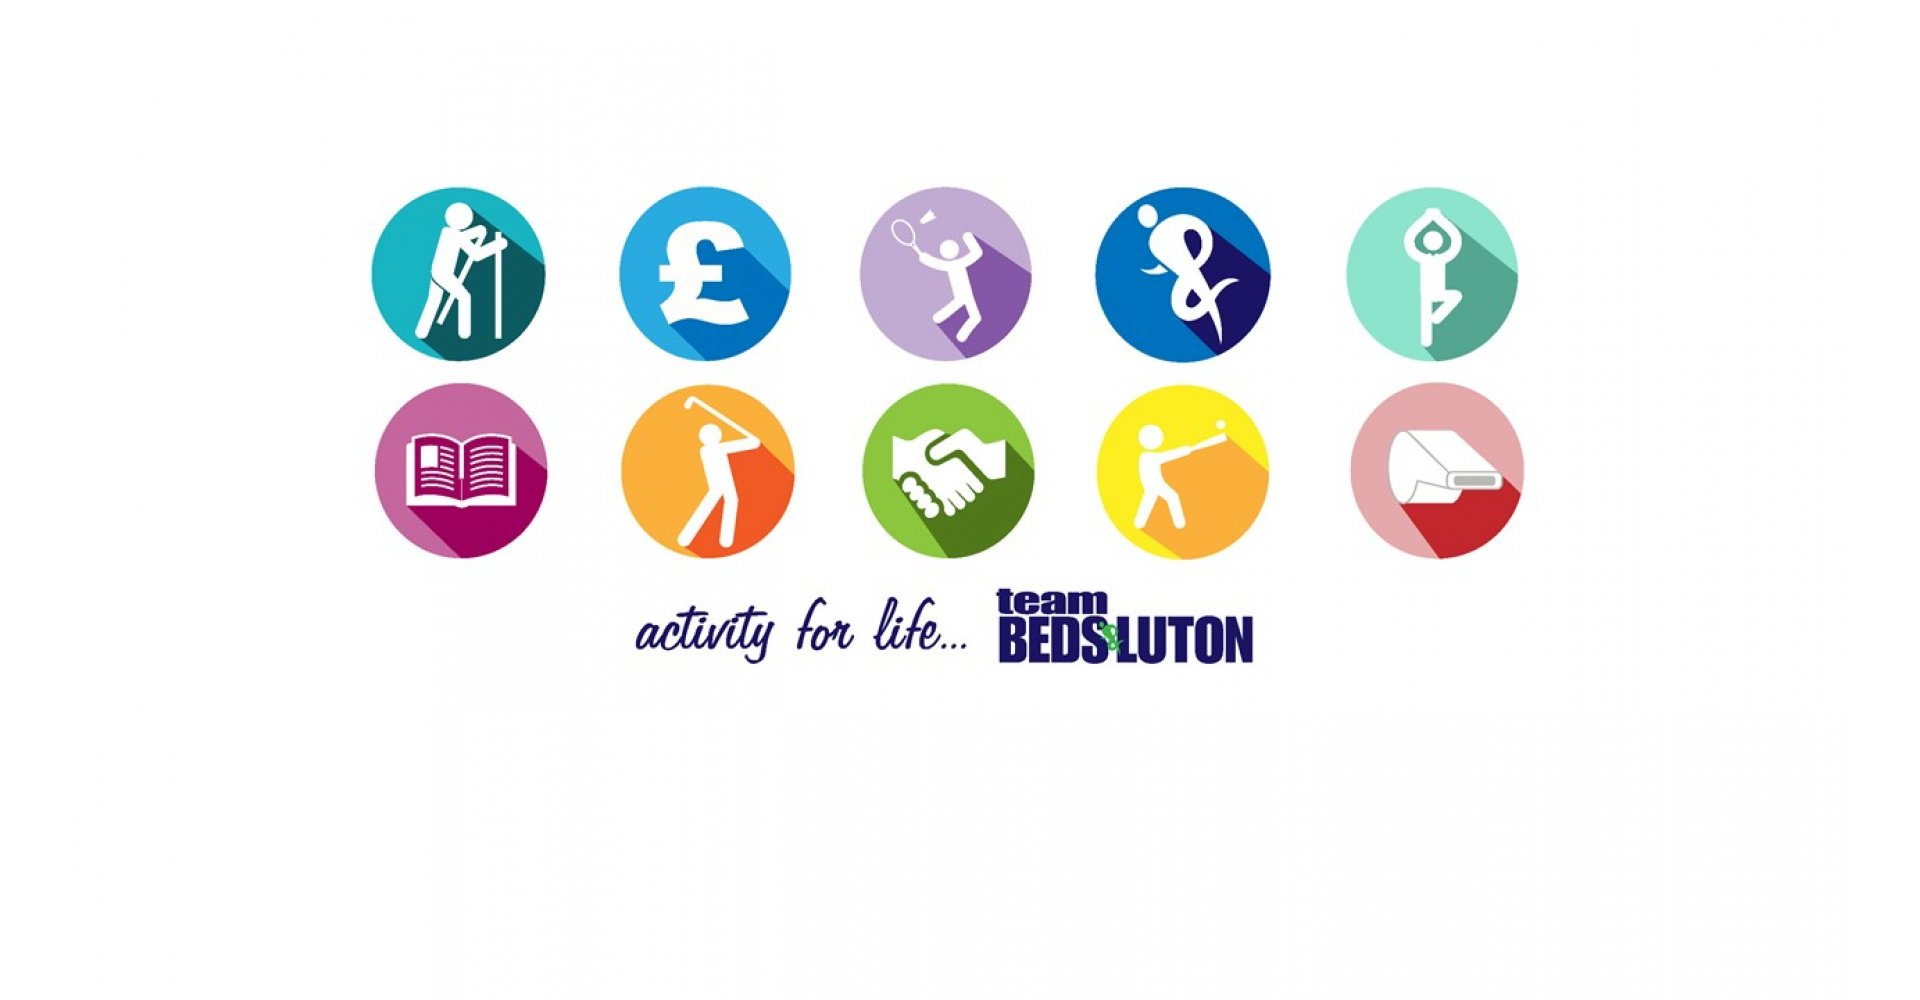 Join us in our vision for a Healthier, Happier & Fitter Bedfordshire